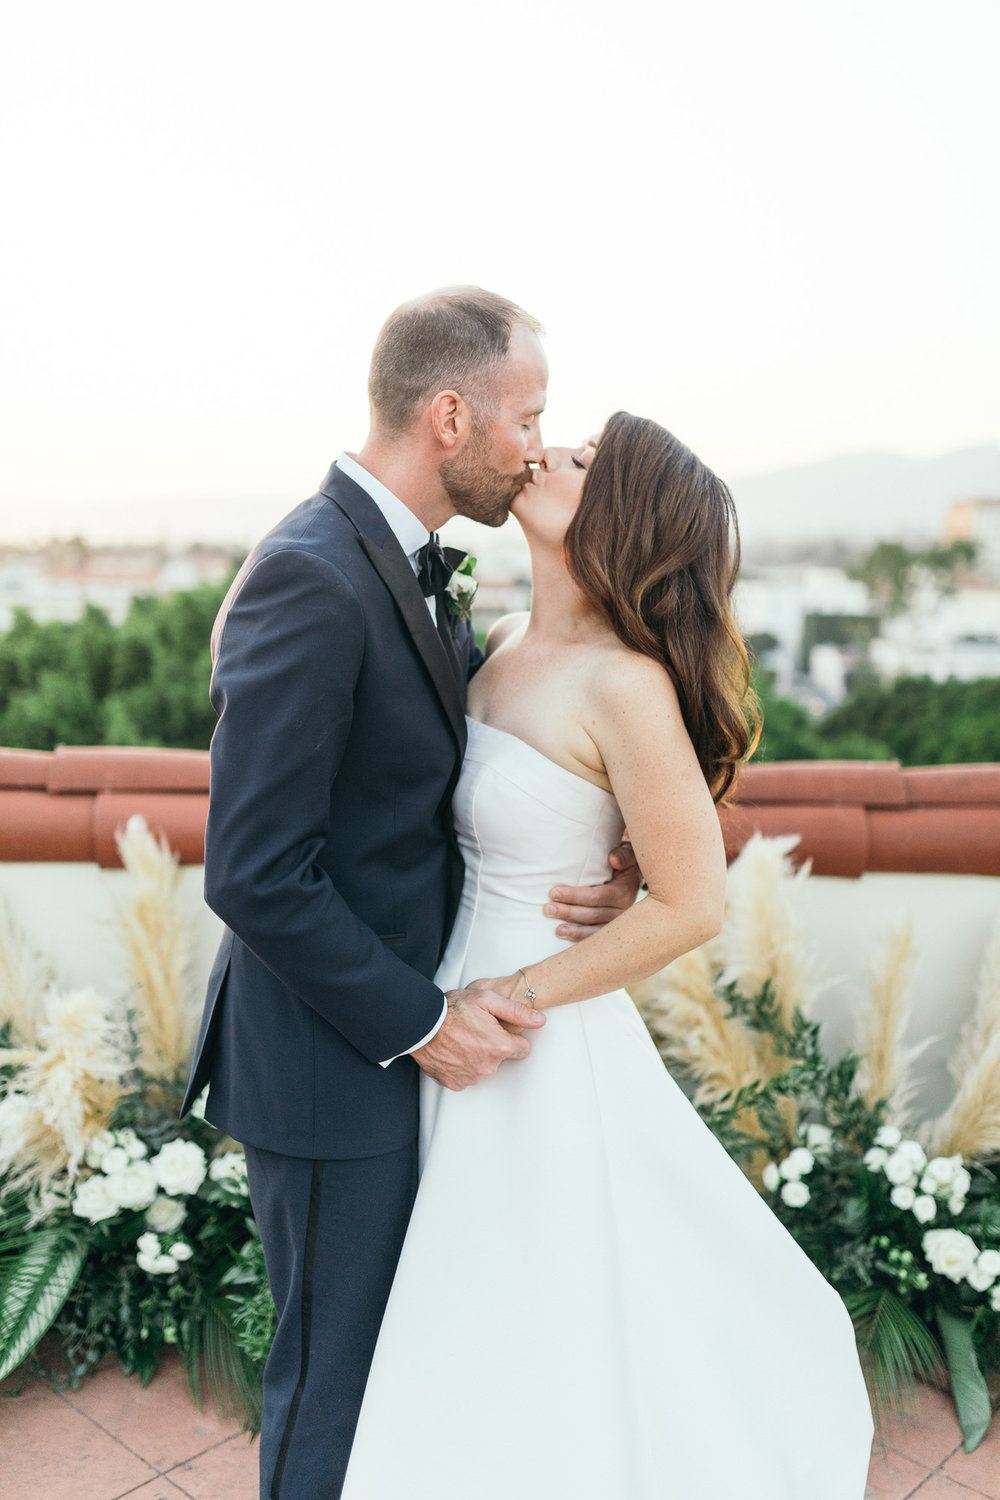 www.santabarbarawedding.com | Kiel Rucker | Bride and Groom